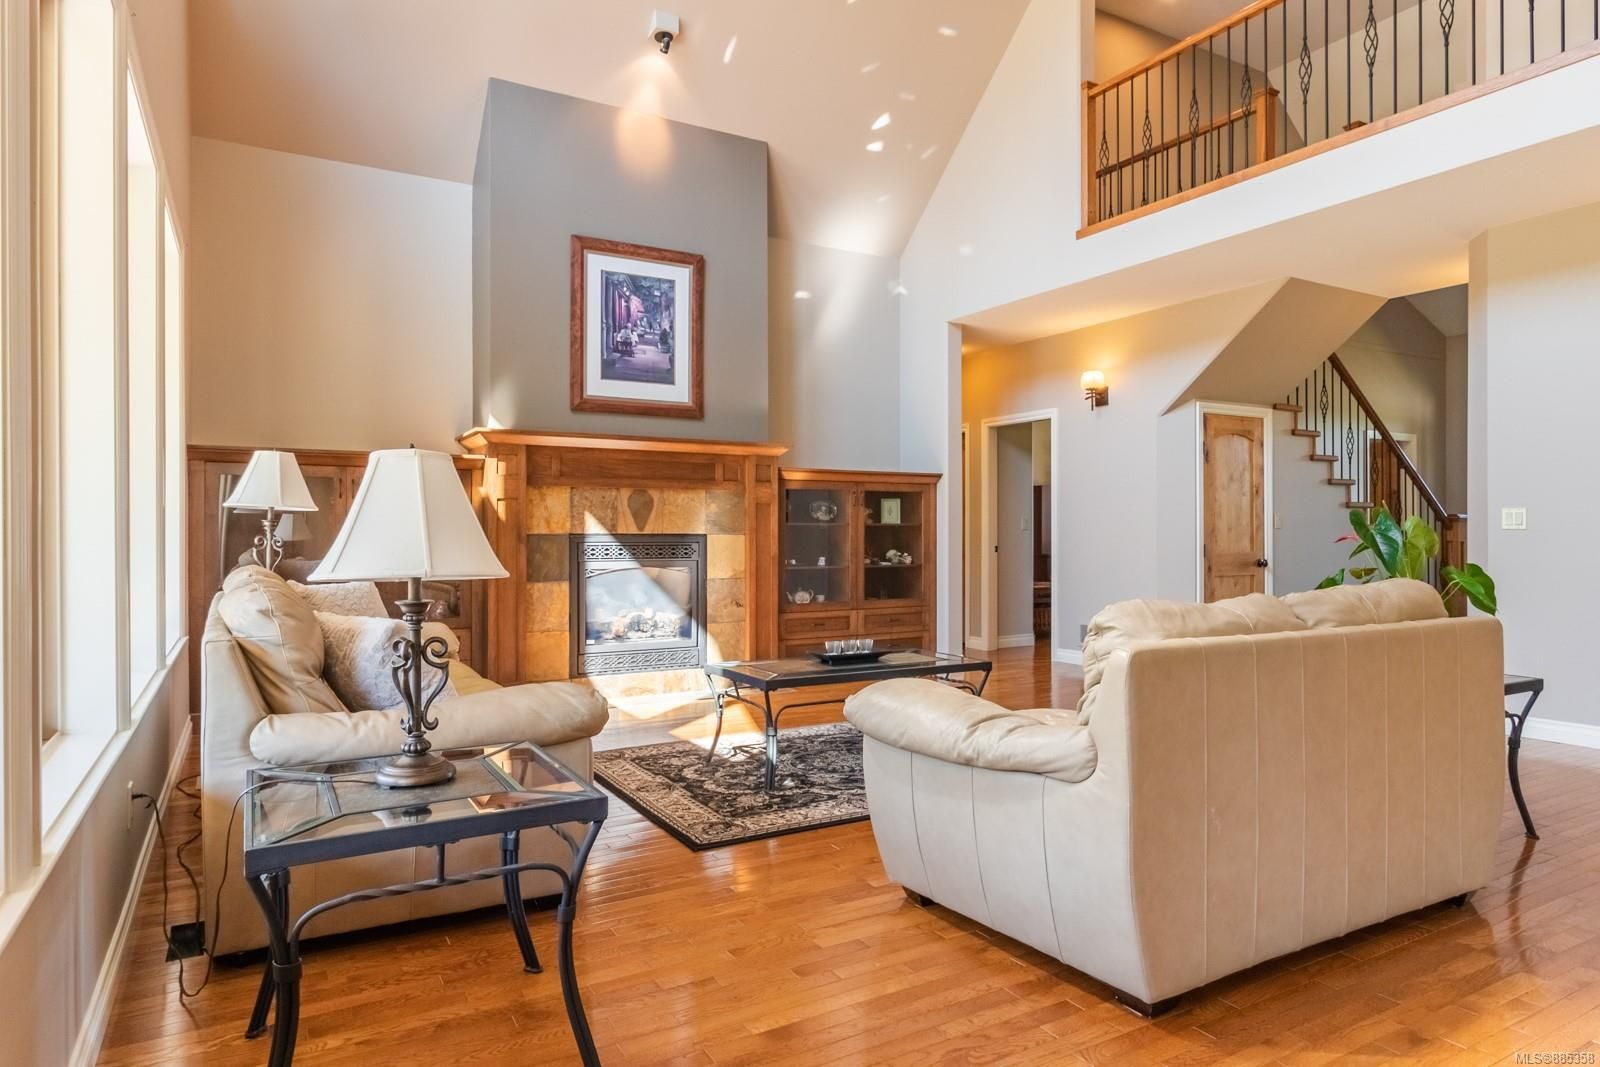 Photo 10: Photos: 2850 Peters Rd in : PQ Qualicum Beach House for sale (Parksville/Qualicum)  : MLS®# 885358